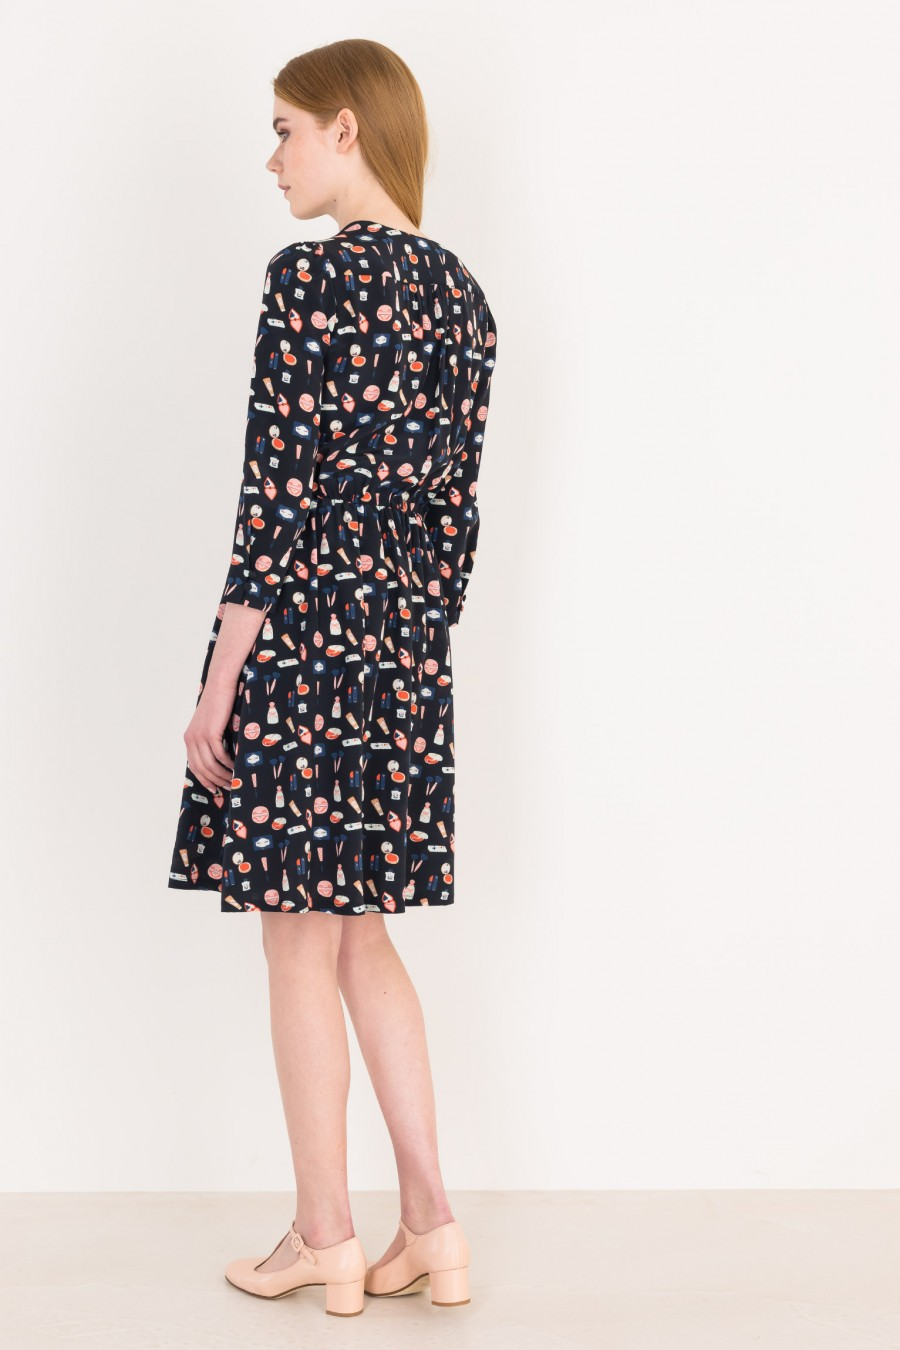 Midi dress with illustrations